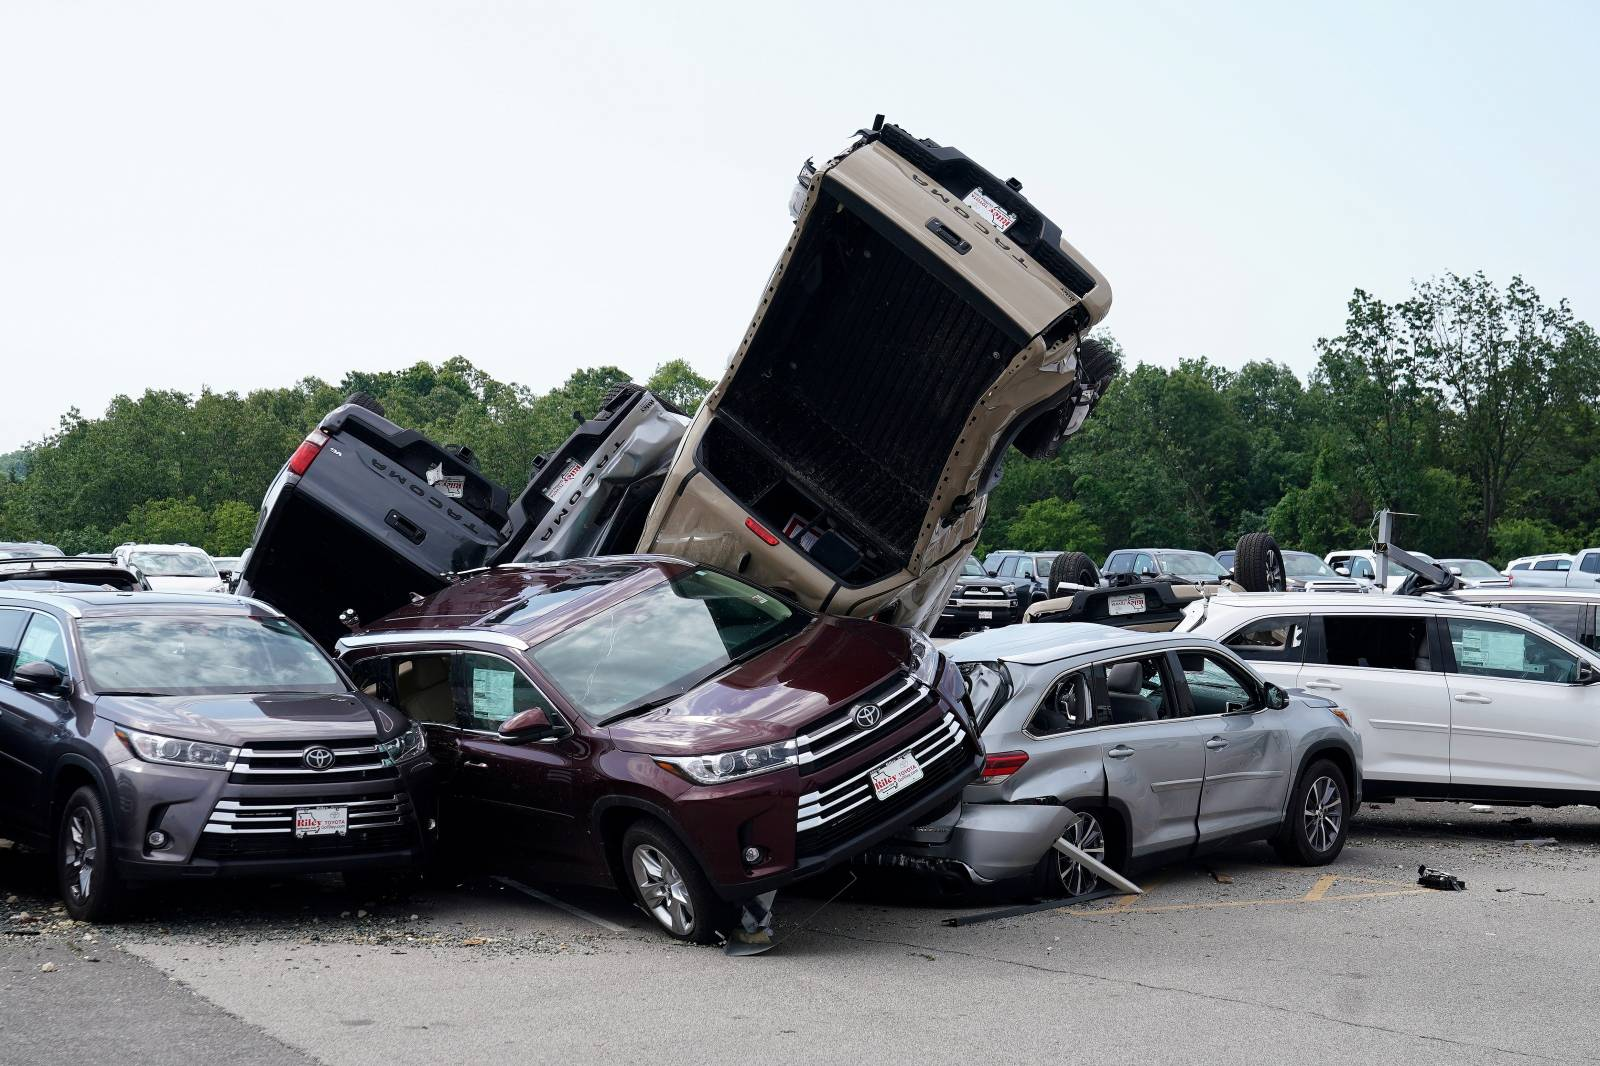 FILE PHOTO: Wrecked vehicles are pictured at a Toyota dealer following a tornado in Jefferson City